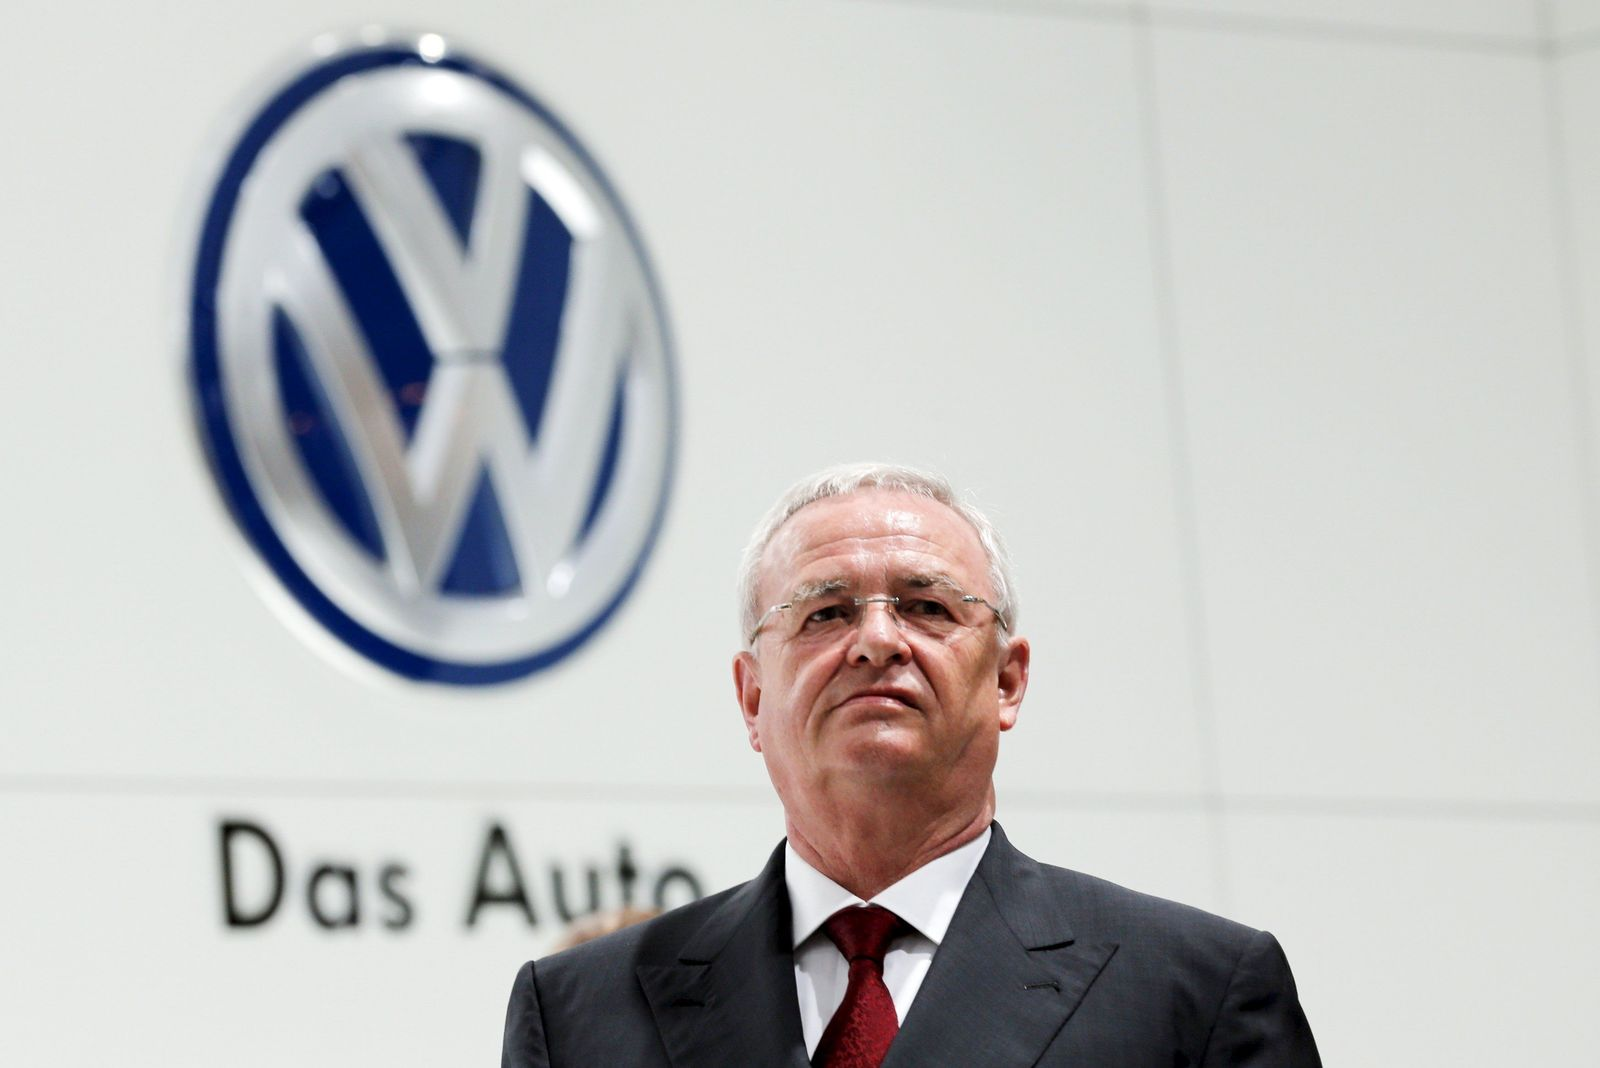 USA-VOLKSWAGEN/MANAGEMENTCHANGES